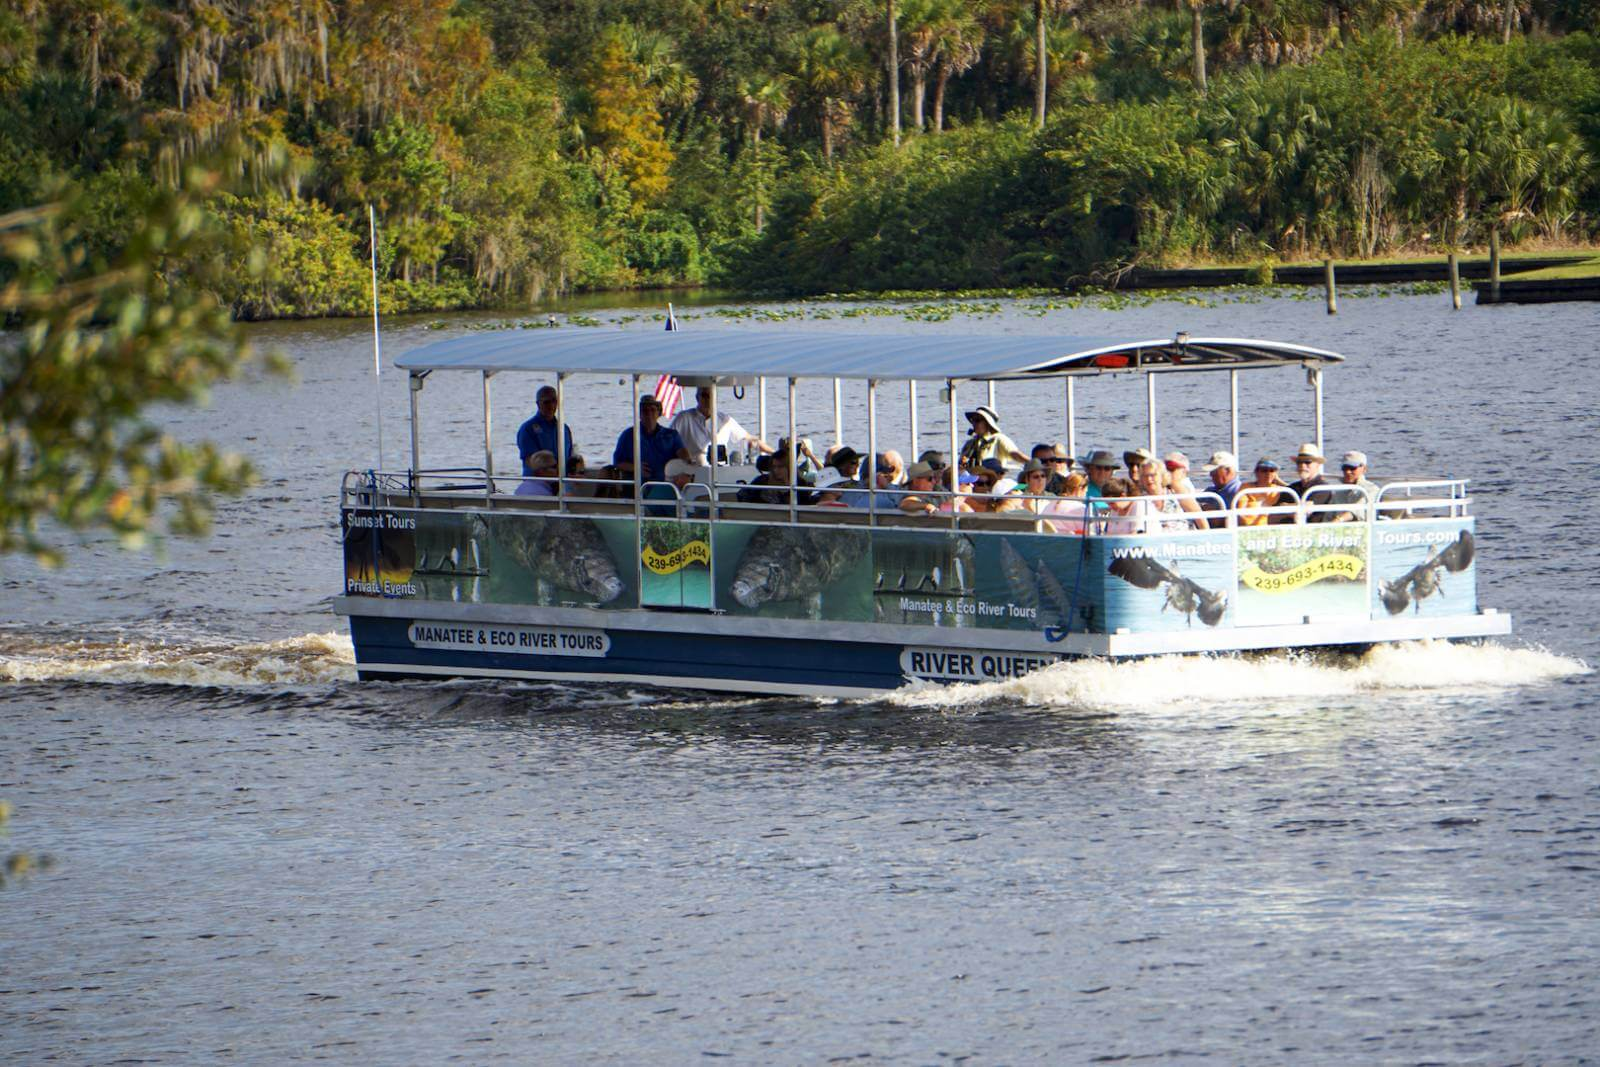 Boat Tour on Caloosahatchee River in Fort Myers, Florida.